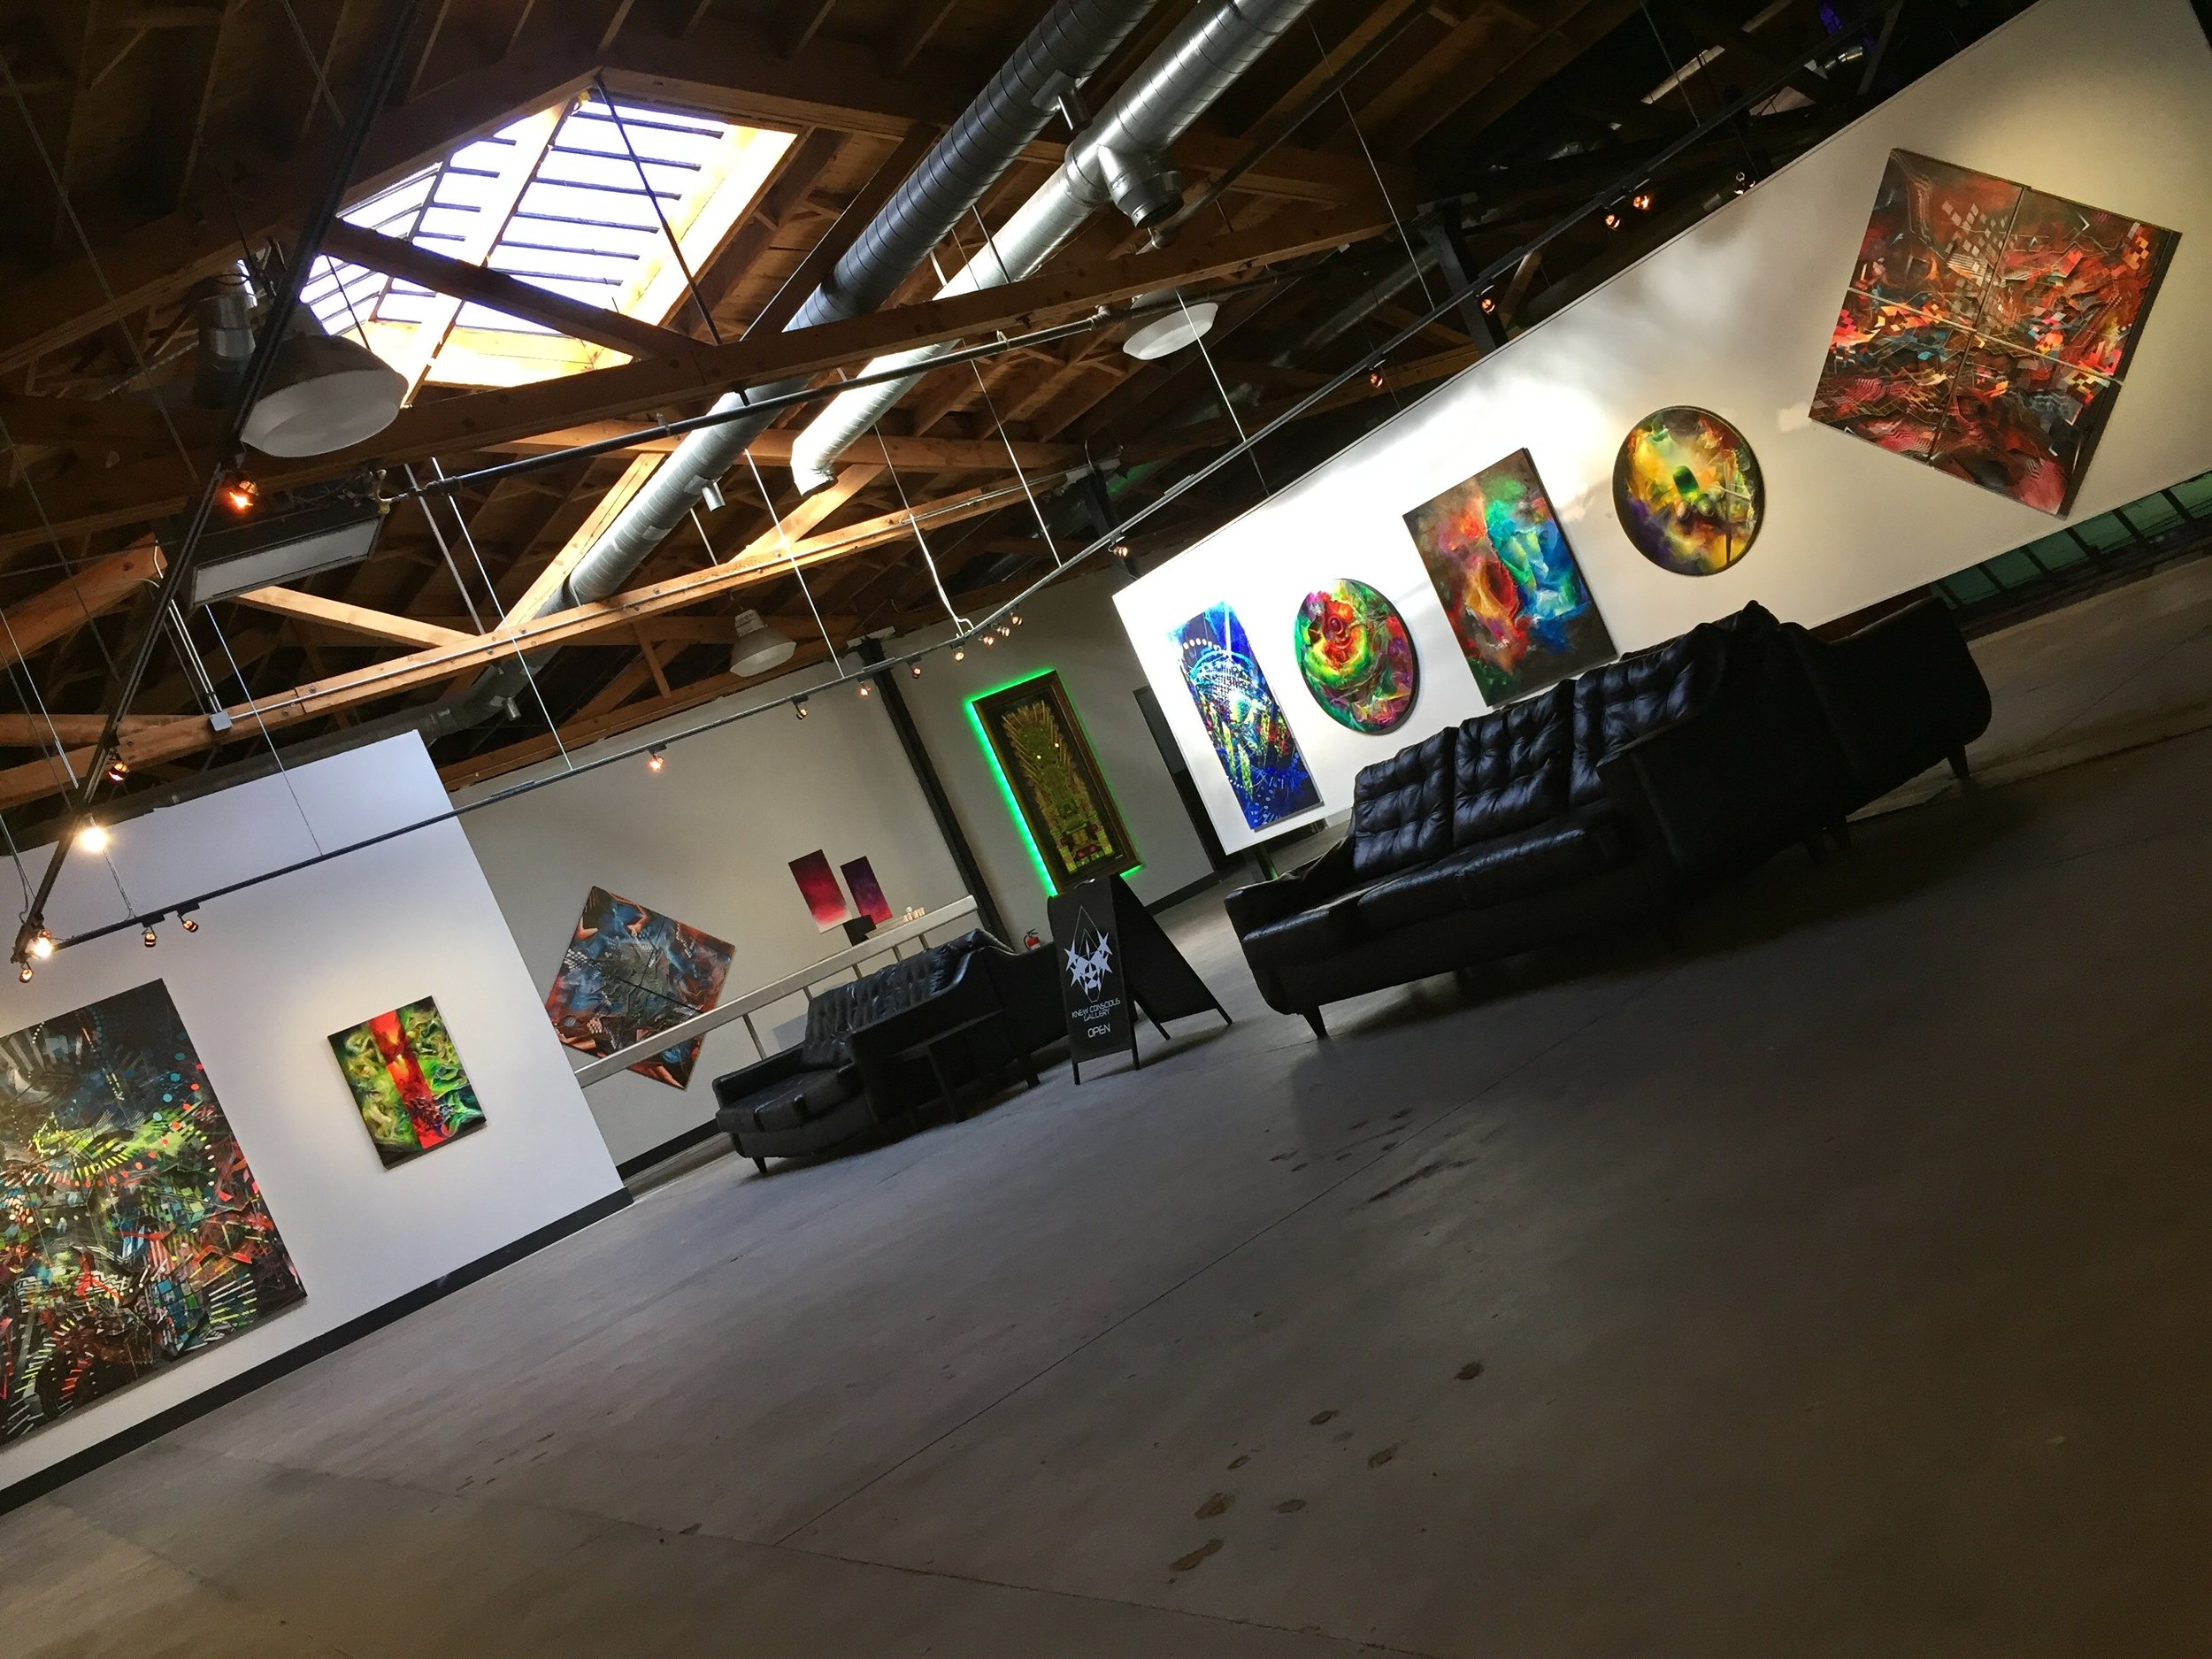 Gallery view at Knew Conscious in Denver